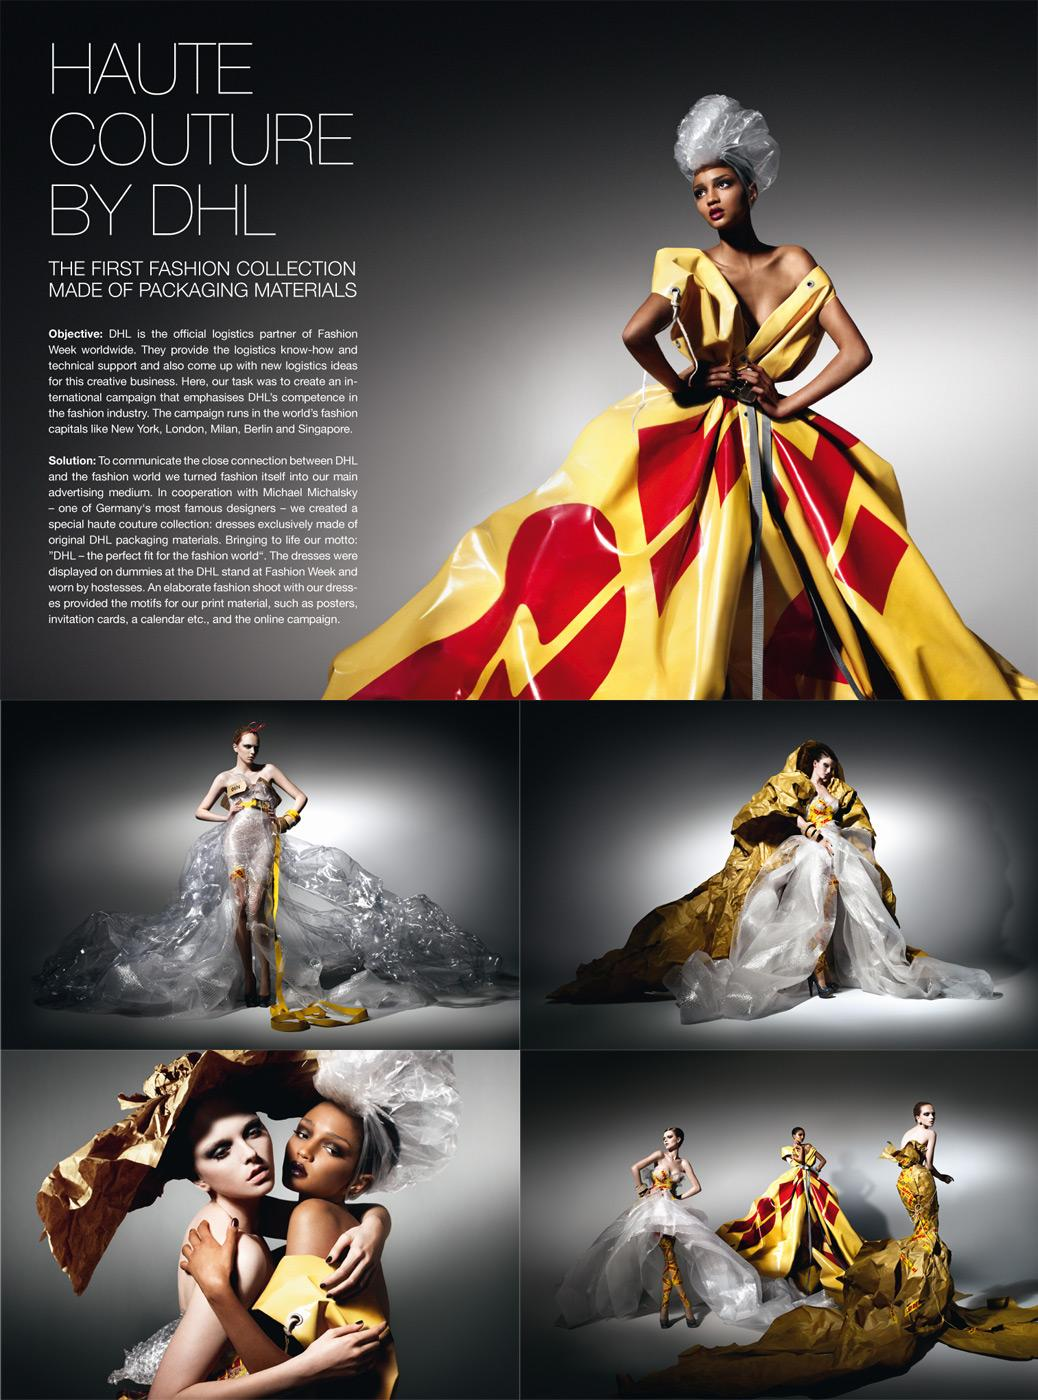 DHL Ambient Ad -  Haute Couture